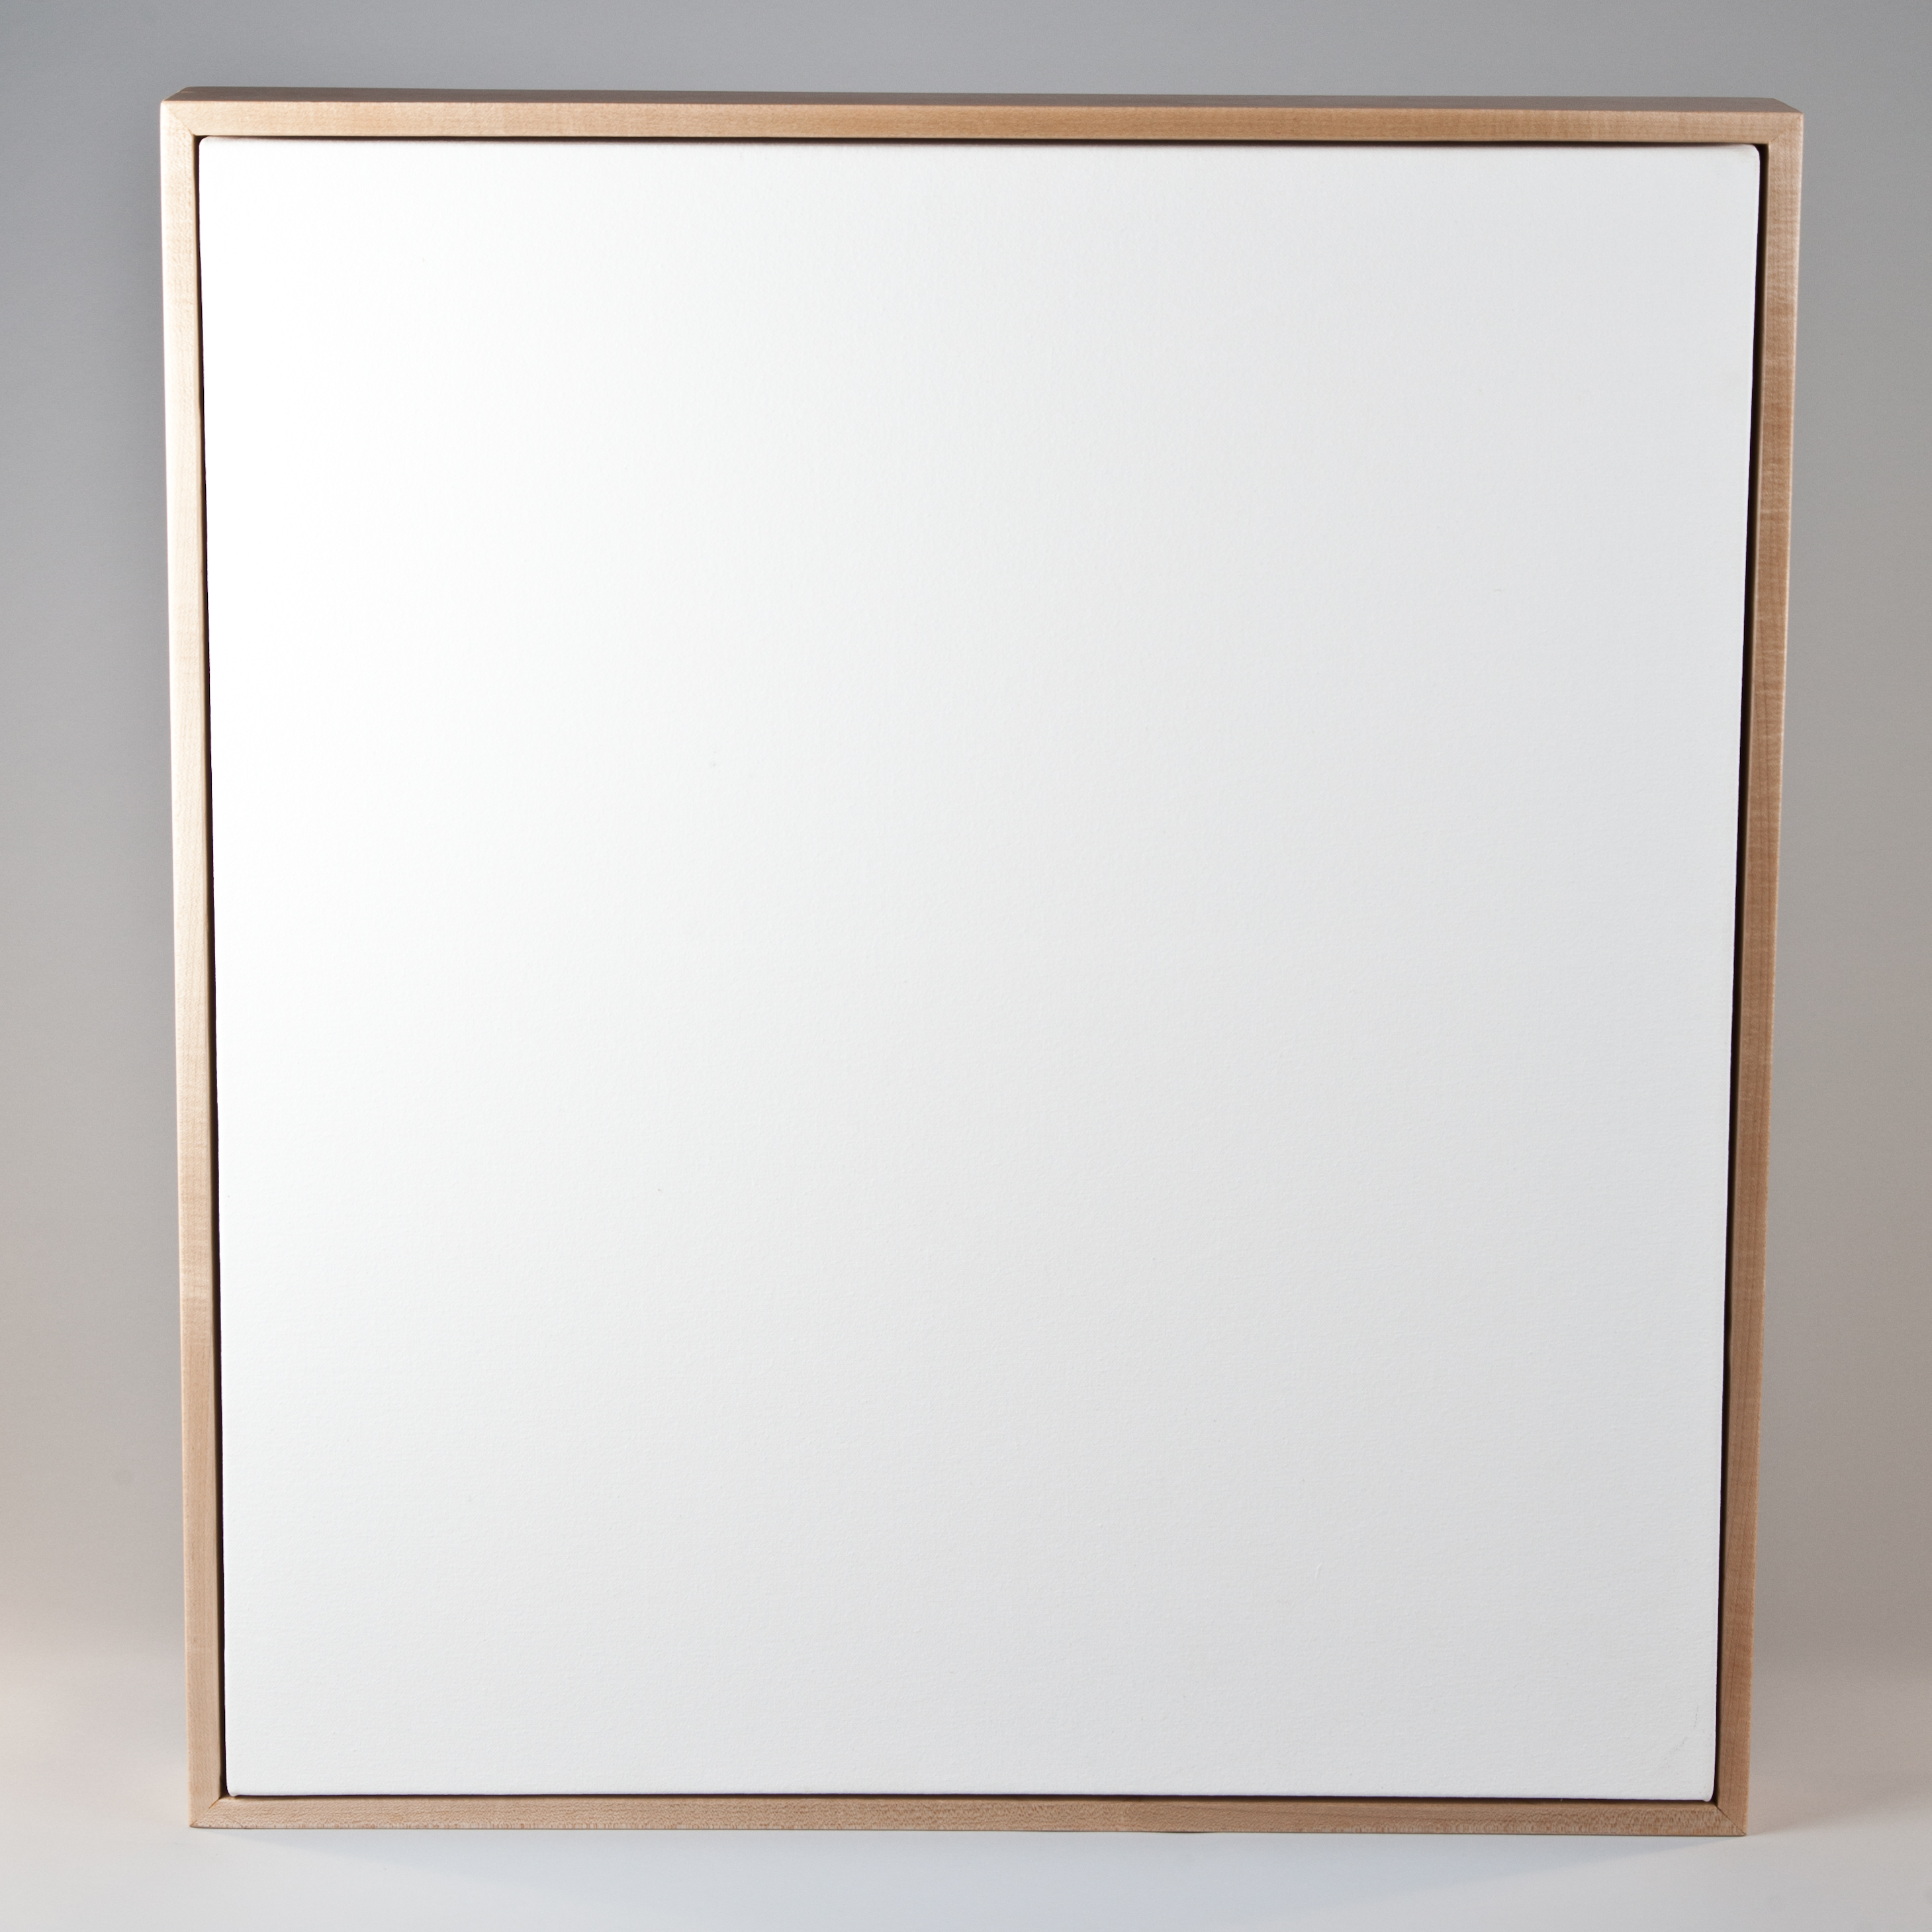 Simple Floater Frames from the Custom Canvas Shop